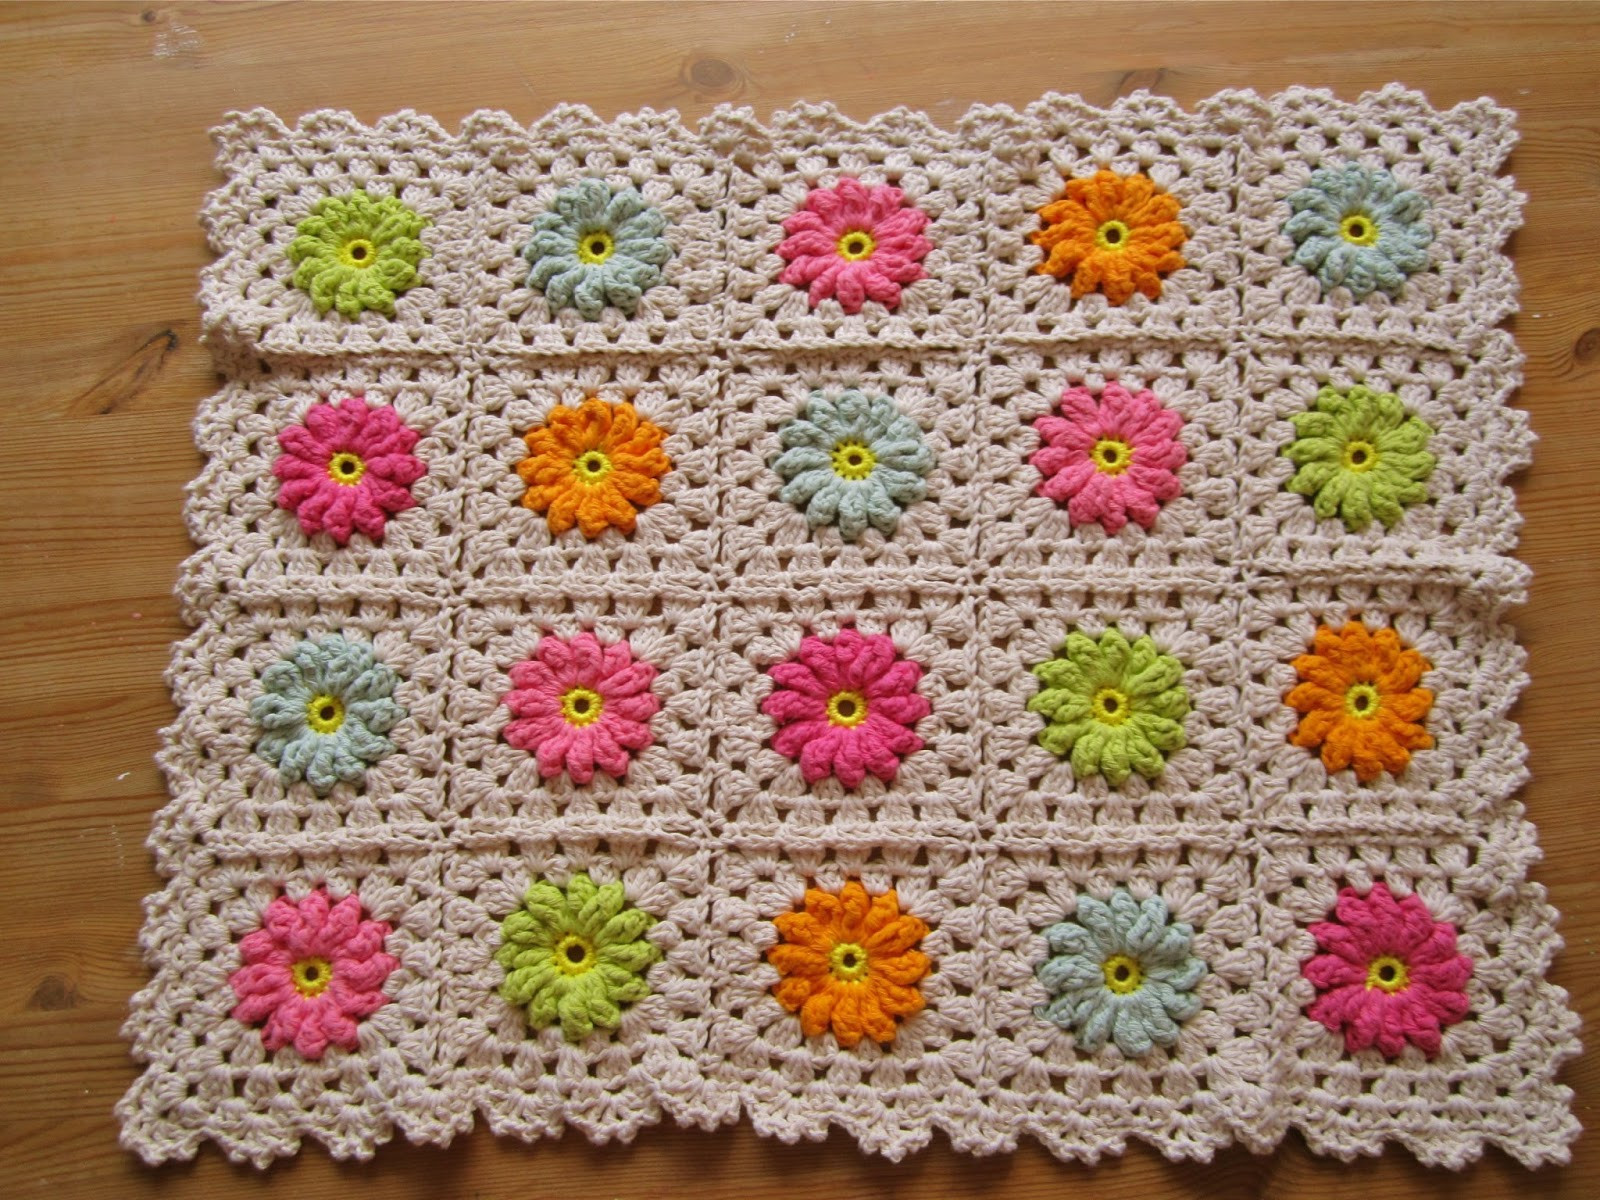 Flower Granny Square Elegant Color N Cream Crochet and Dream Flower Square Tutorial Iii Of Wonderful 45 Pictures Flower Granny Square